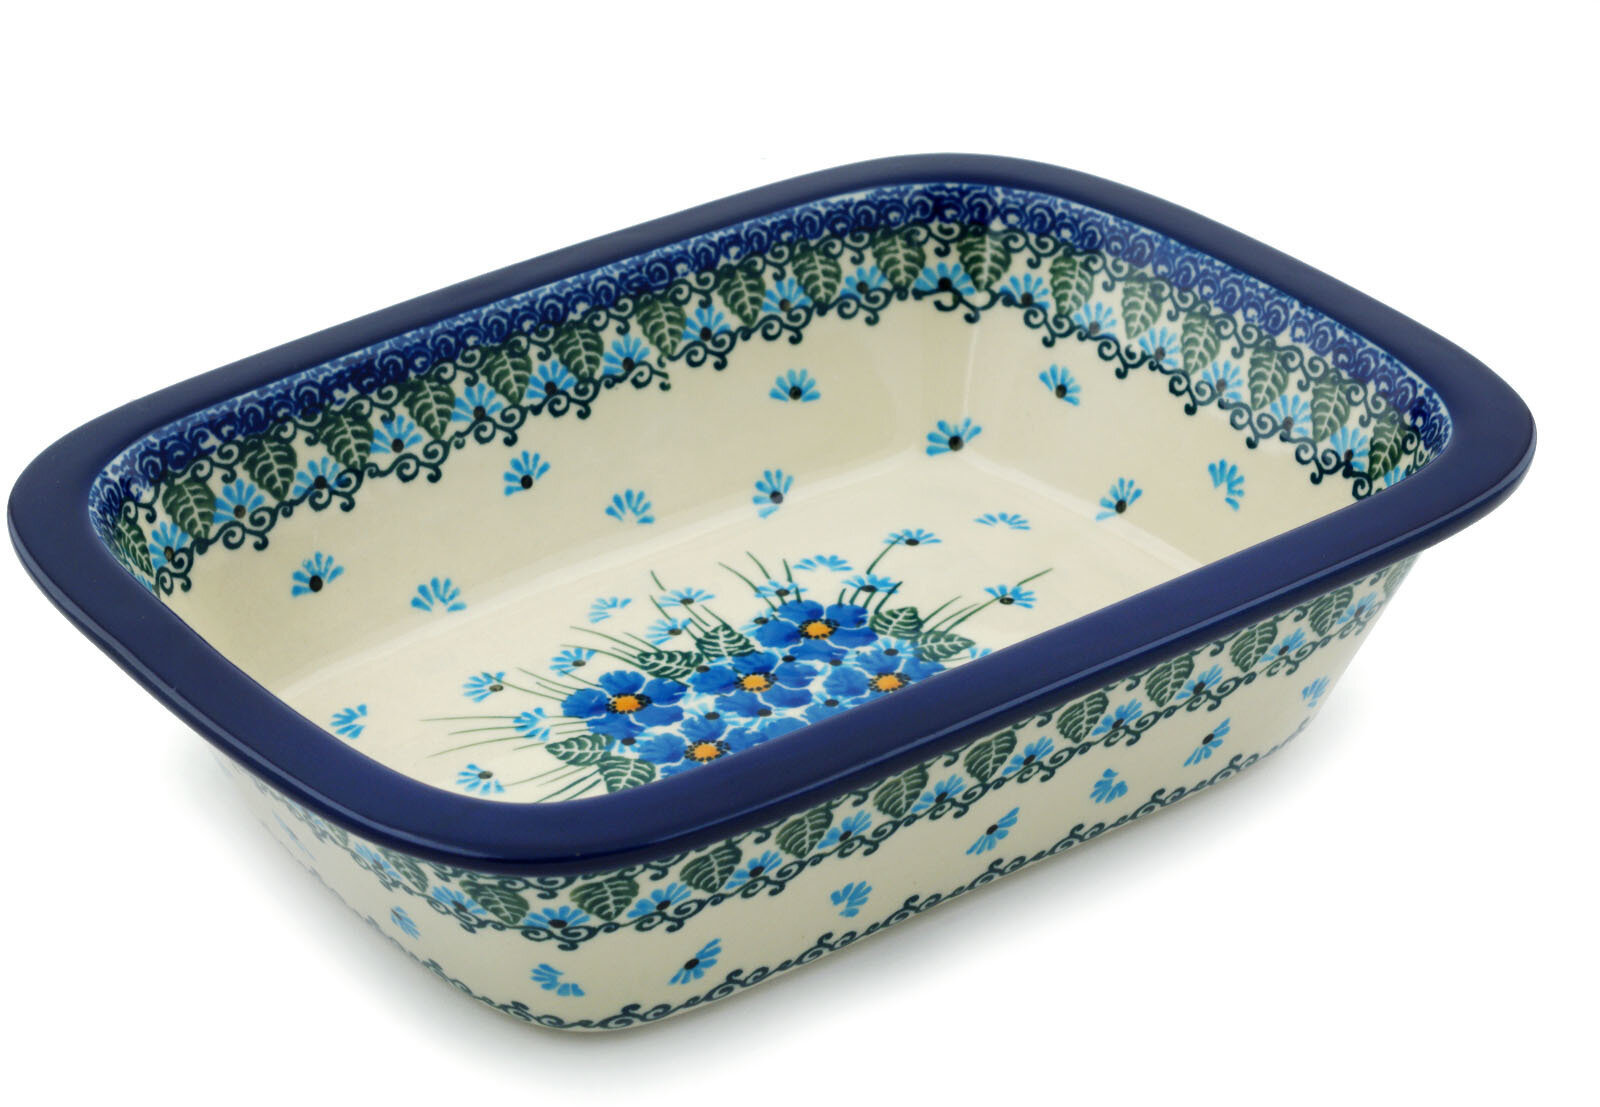 The Holiday Aisle Baking Dishes You Ll Love In 2021 Wayfair Ca